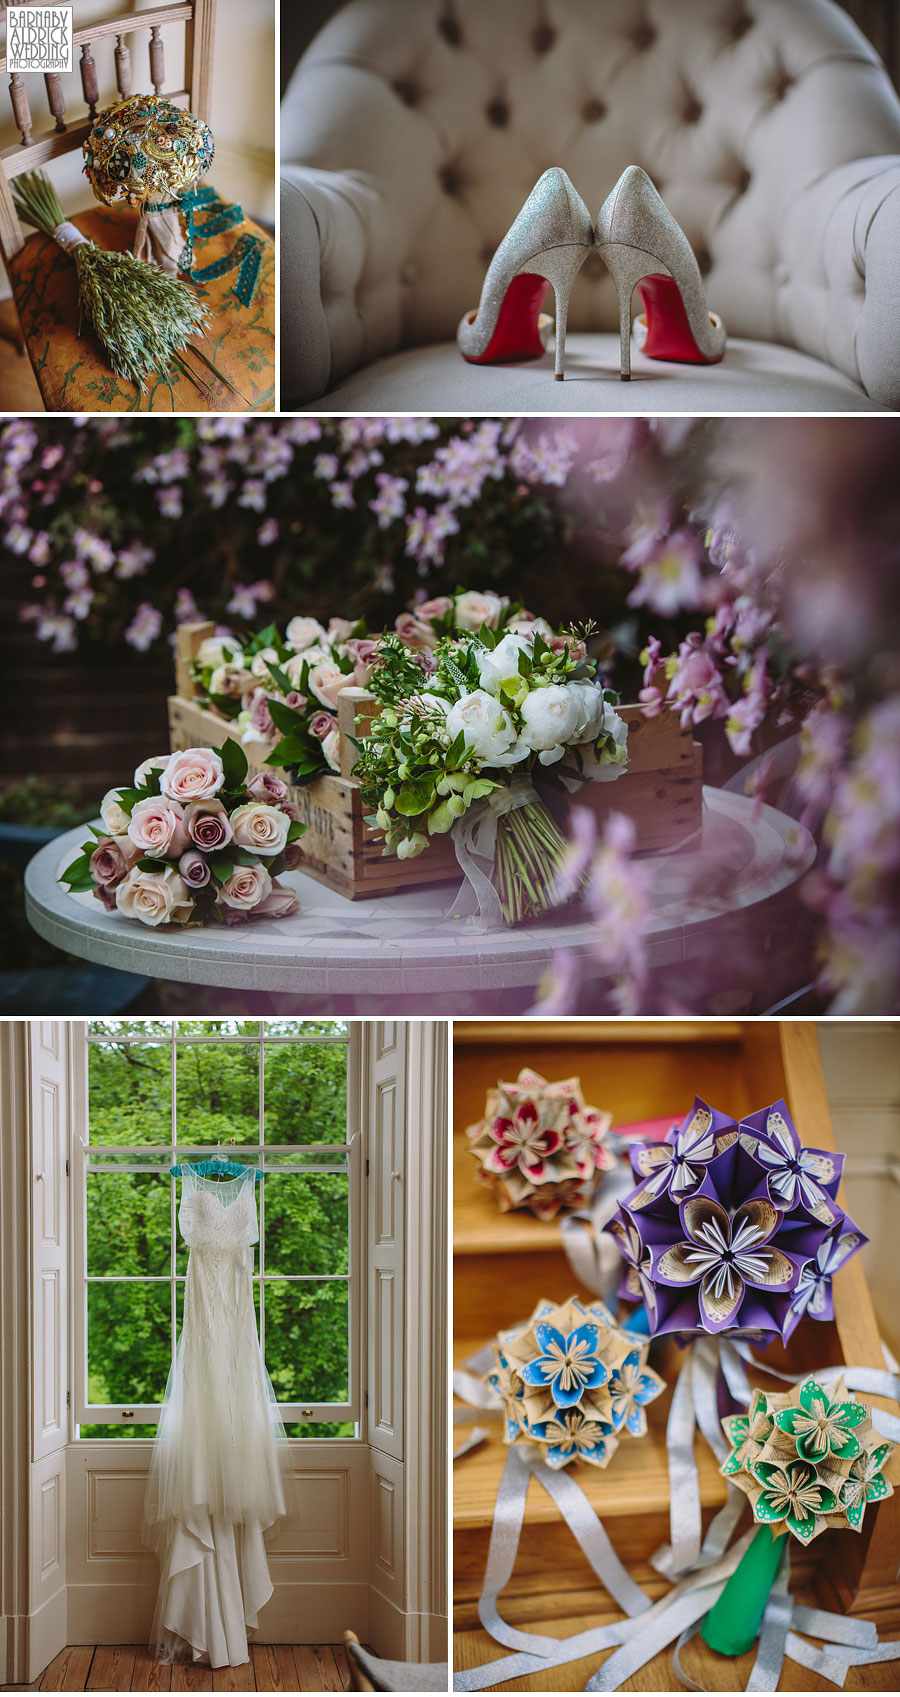 2015 Best Wedding Photography, Amazing Yorkshire Wedding Photography, Best Yorkshire Wedding Photographer Barnaby Aldrick